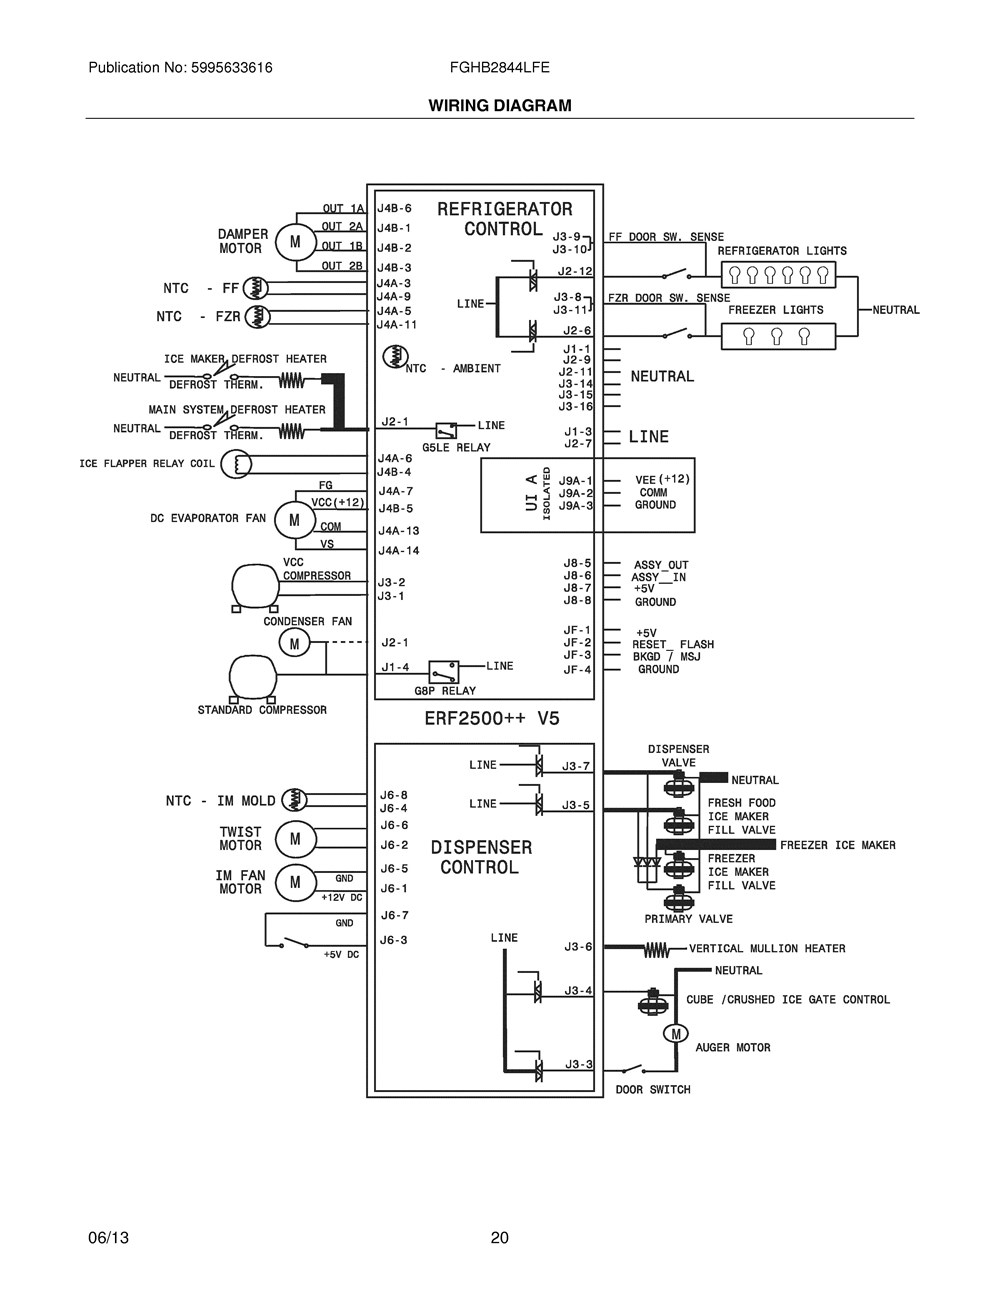 Magnificent wiring diagram for ge refrigerator pictures whirlpool fridge wiring diagram pickup wiring diagram schecter c 7 asfbconference2016 Image collections